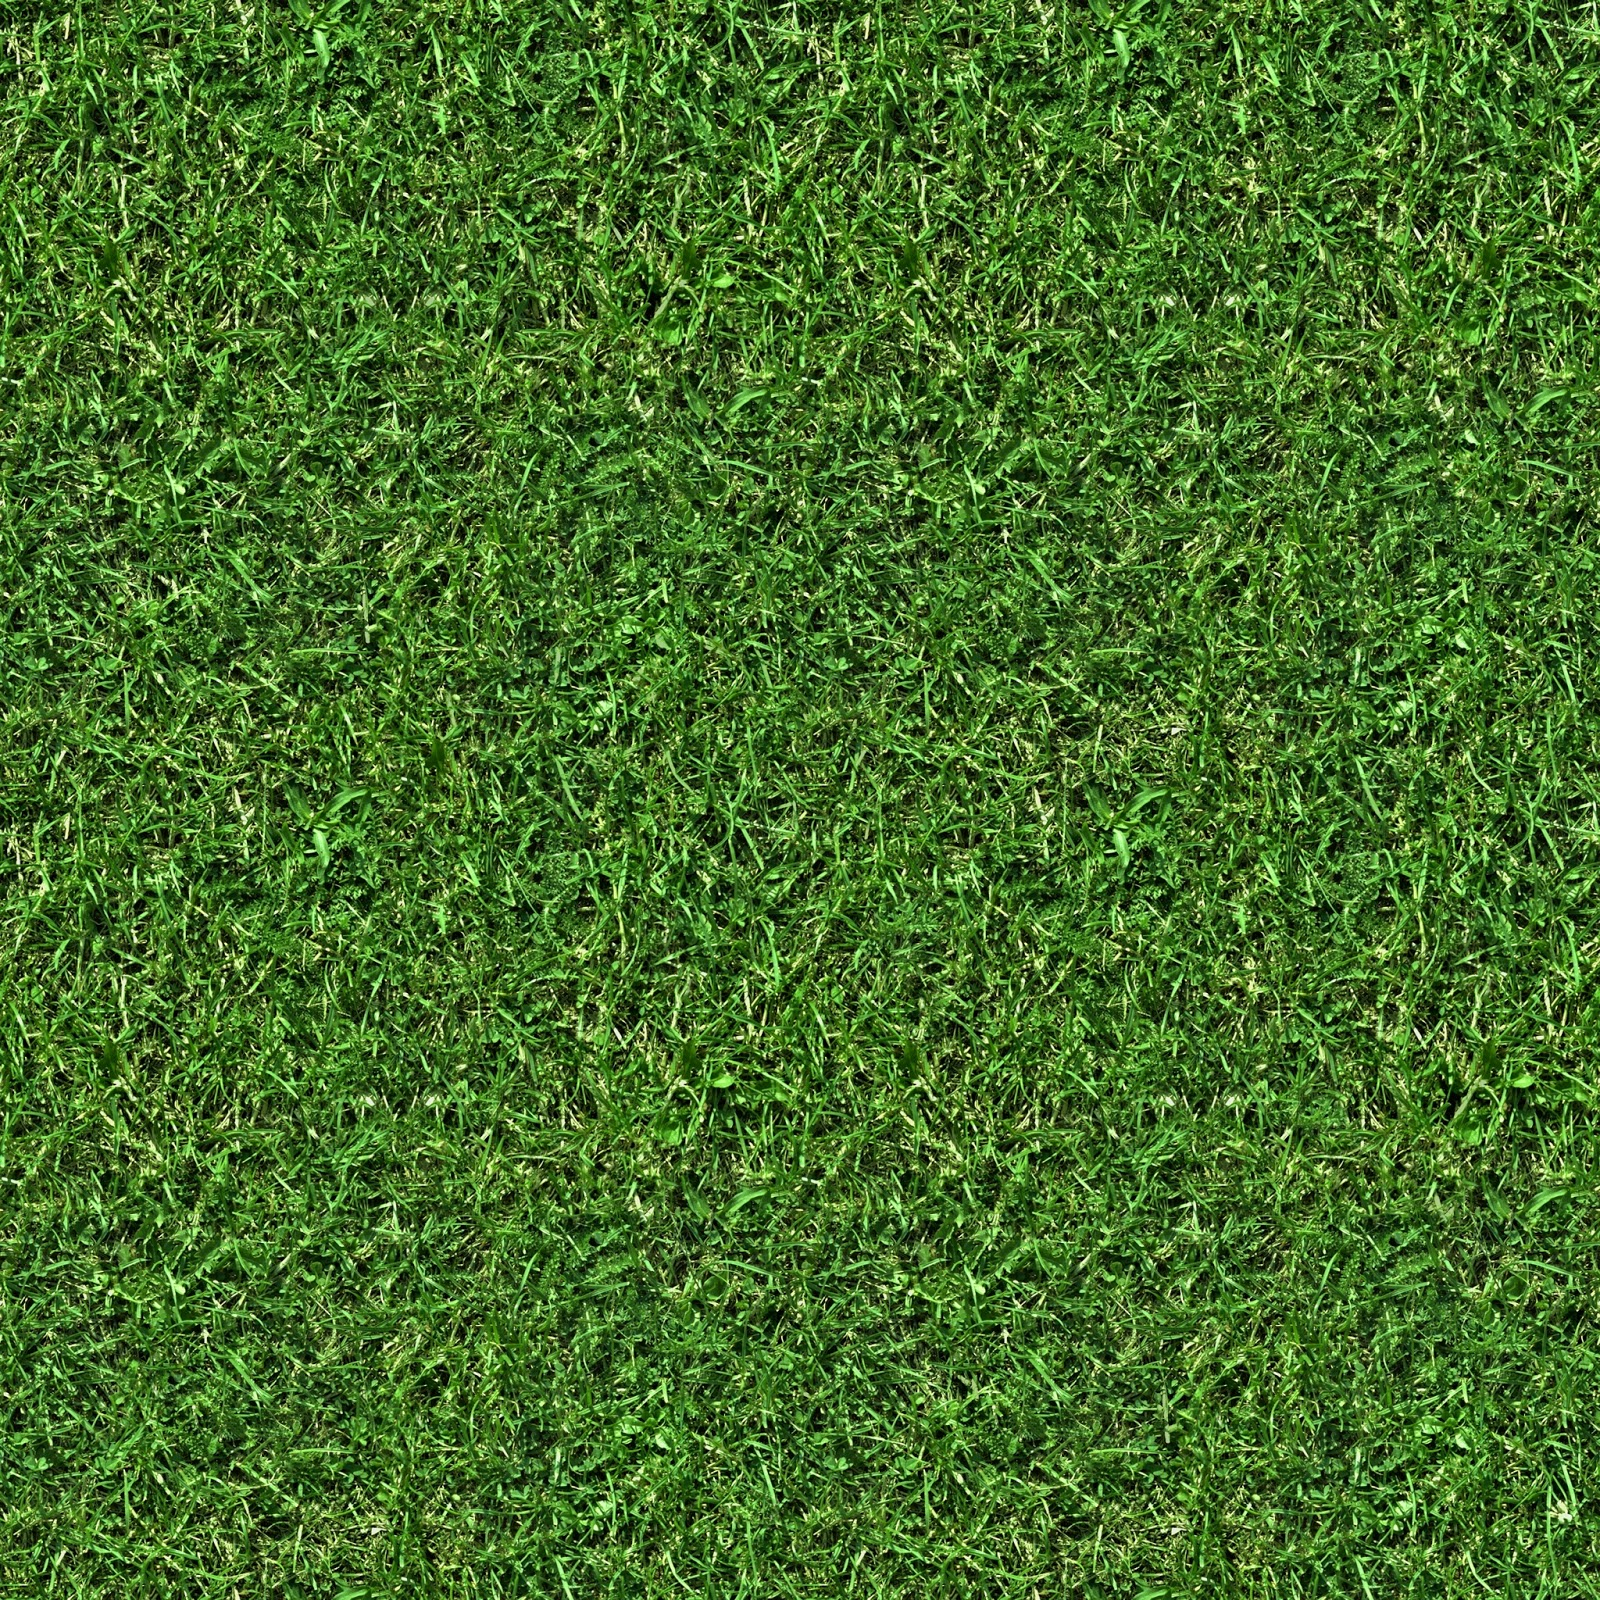 (GRASS 5) seamless turf lawn green ground field texture 2048x2048